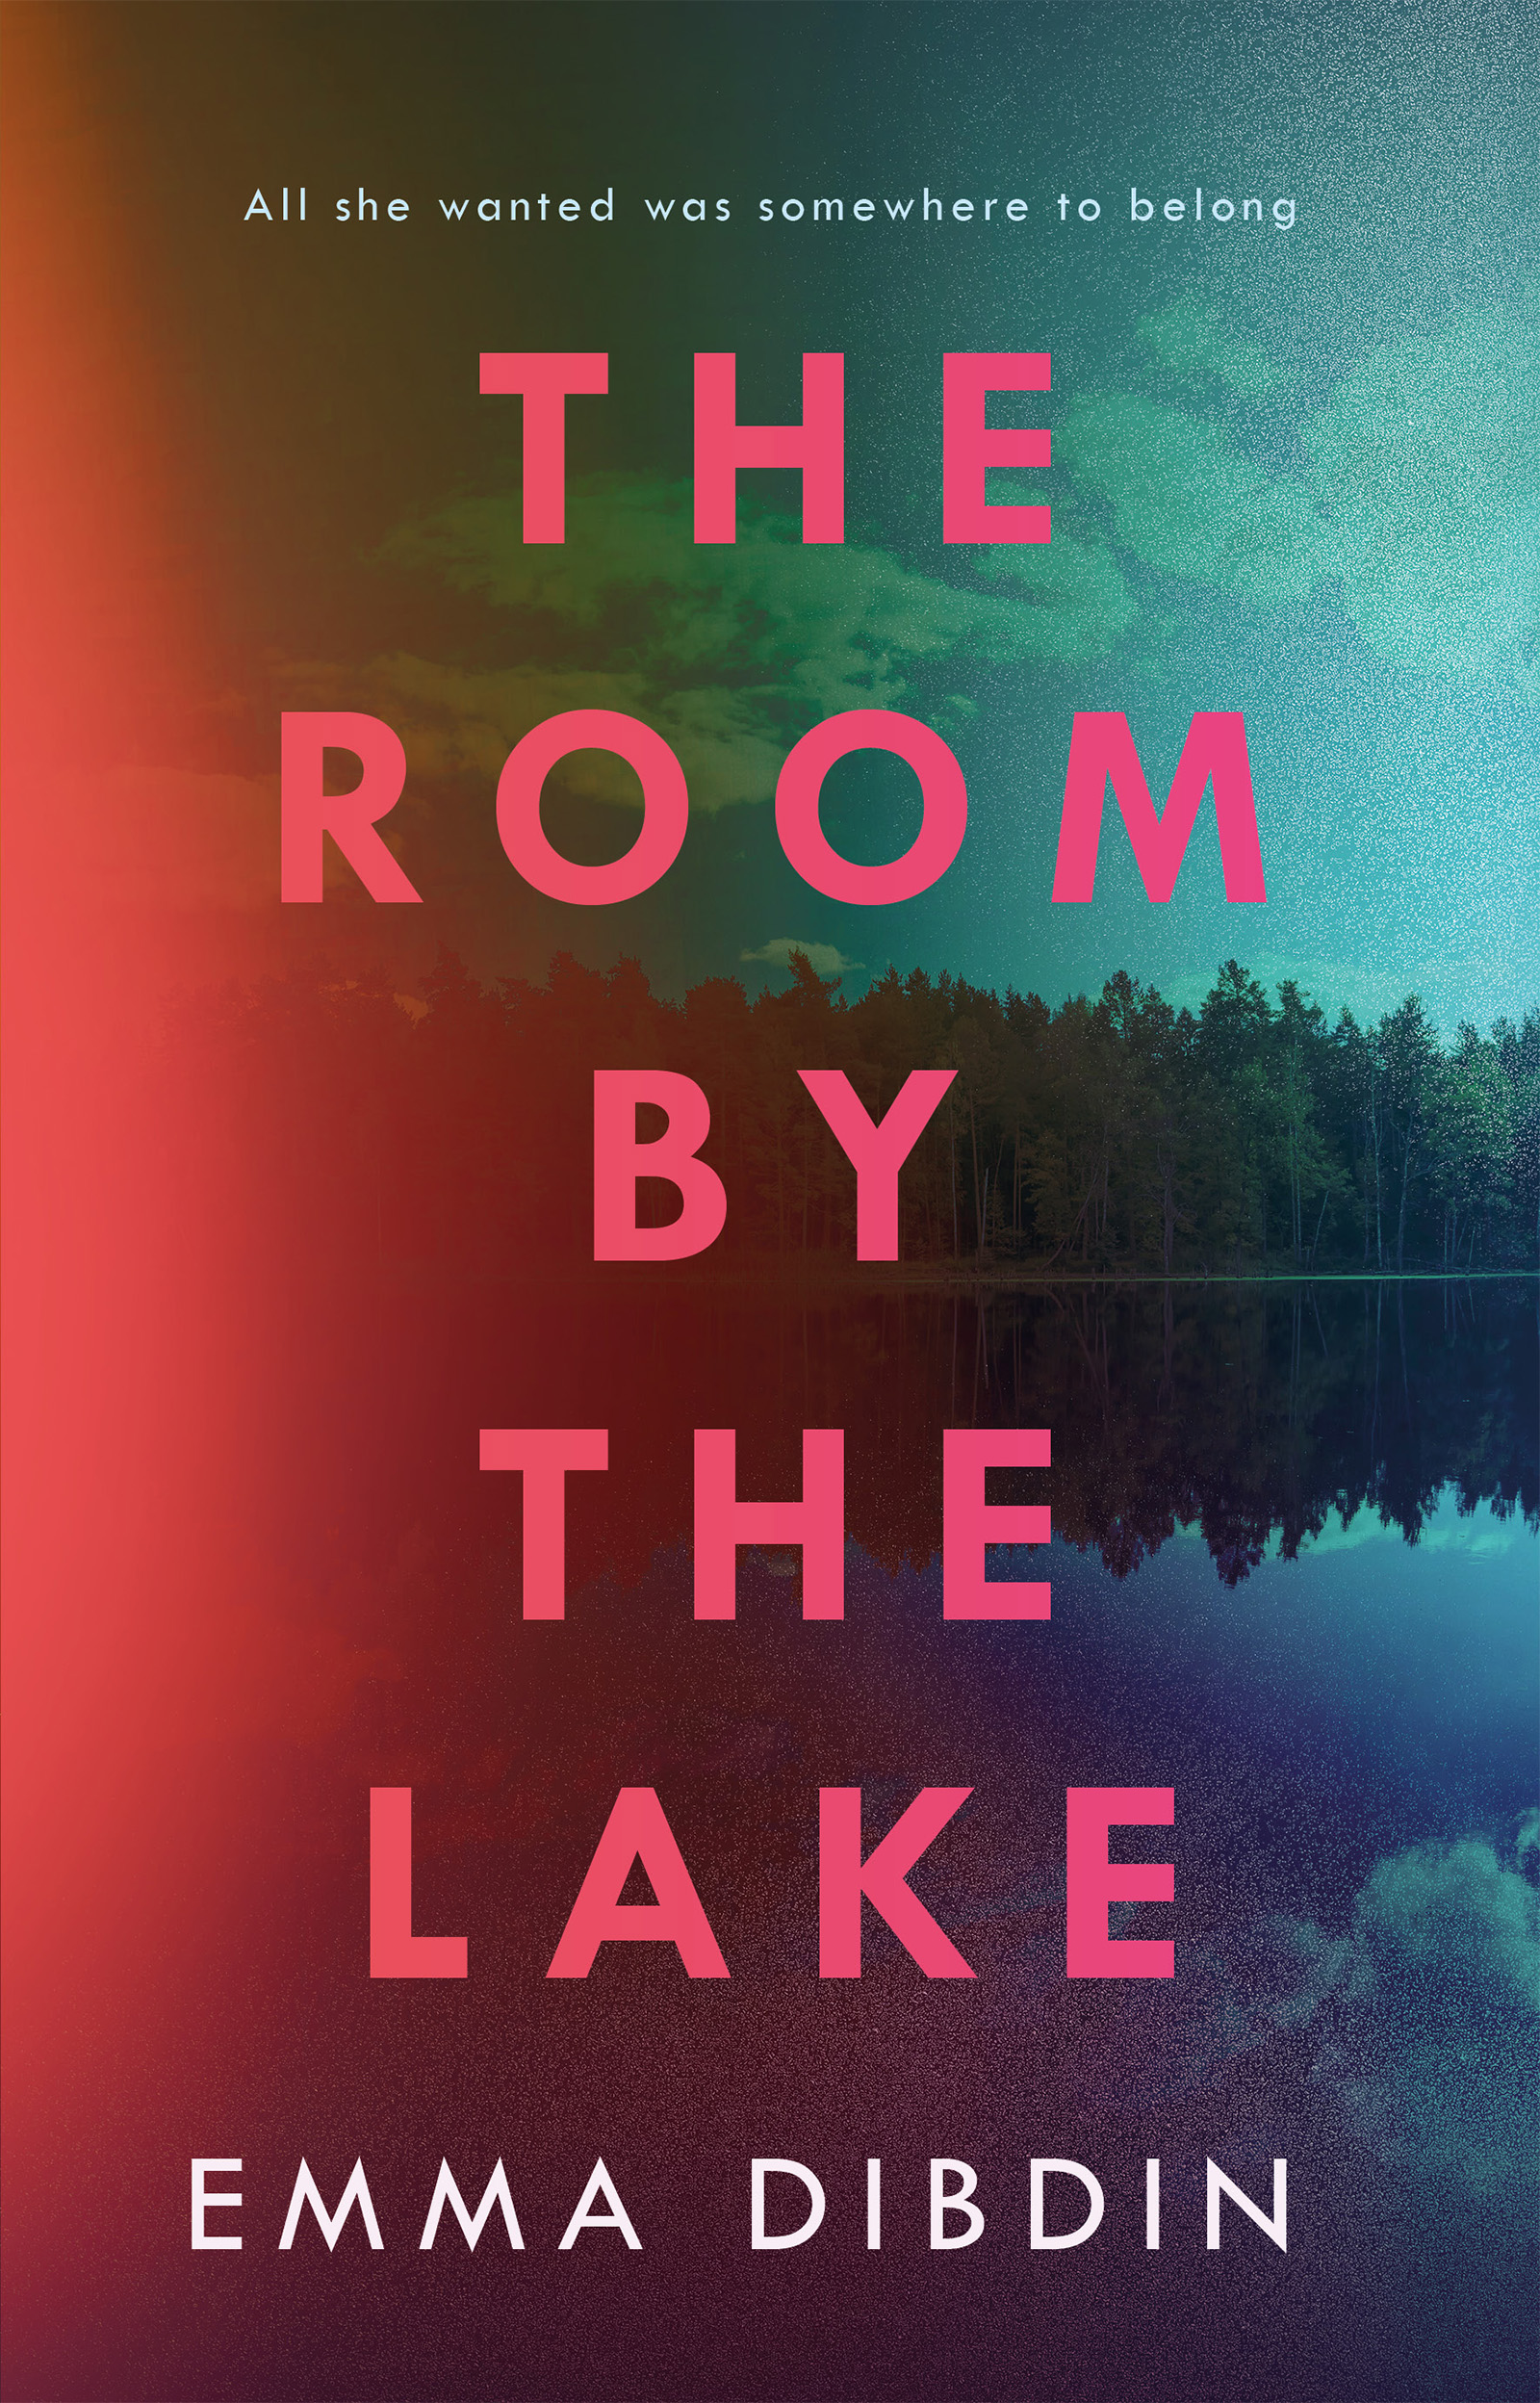 The Room by the Lake by Emma Dibdin